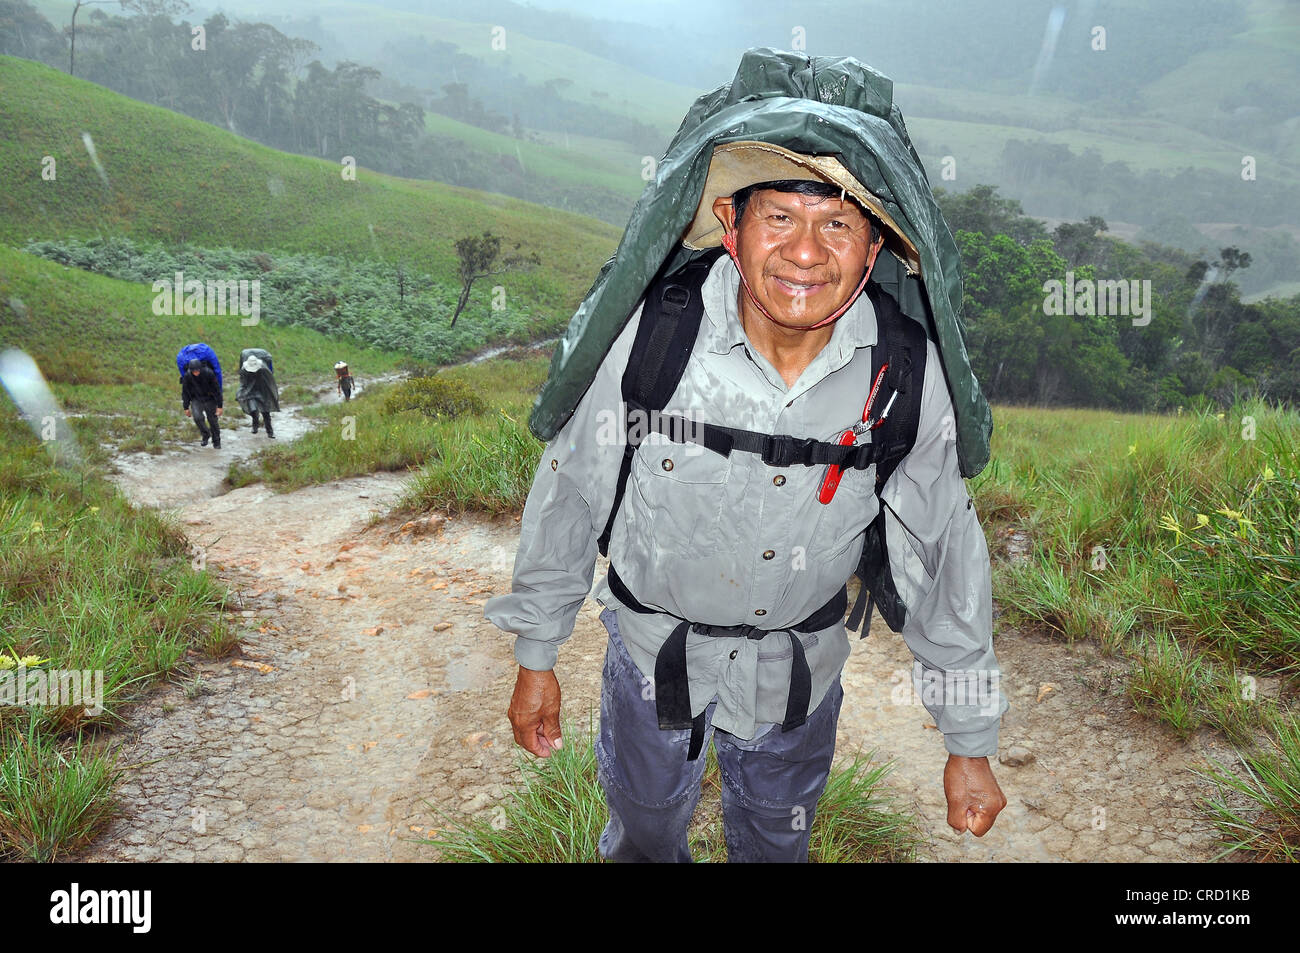 Mountaineer during a strenuous hike in the rain, Mount Roraima, table mountain, border triangle of Brazil, Venezuela - Stock Image